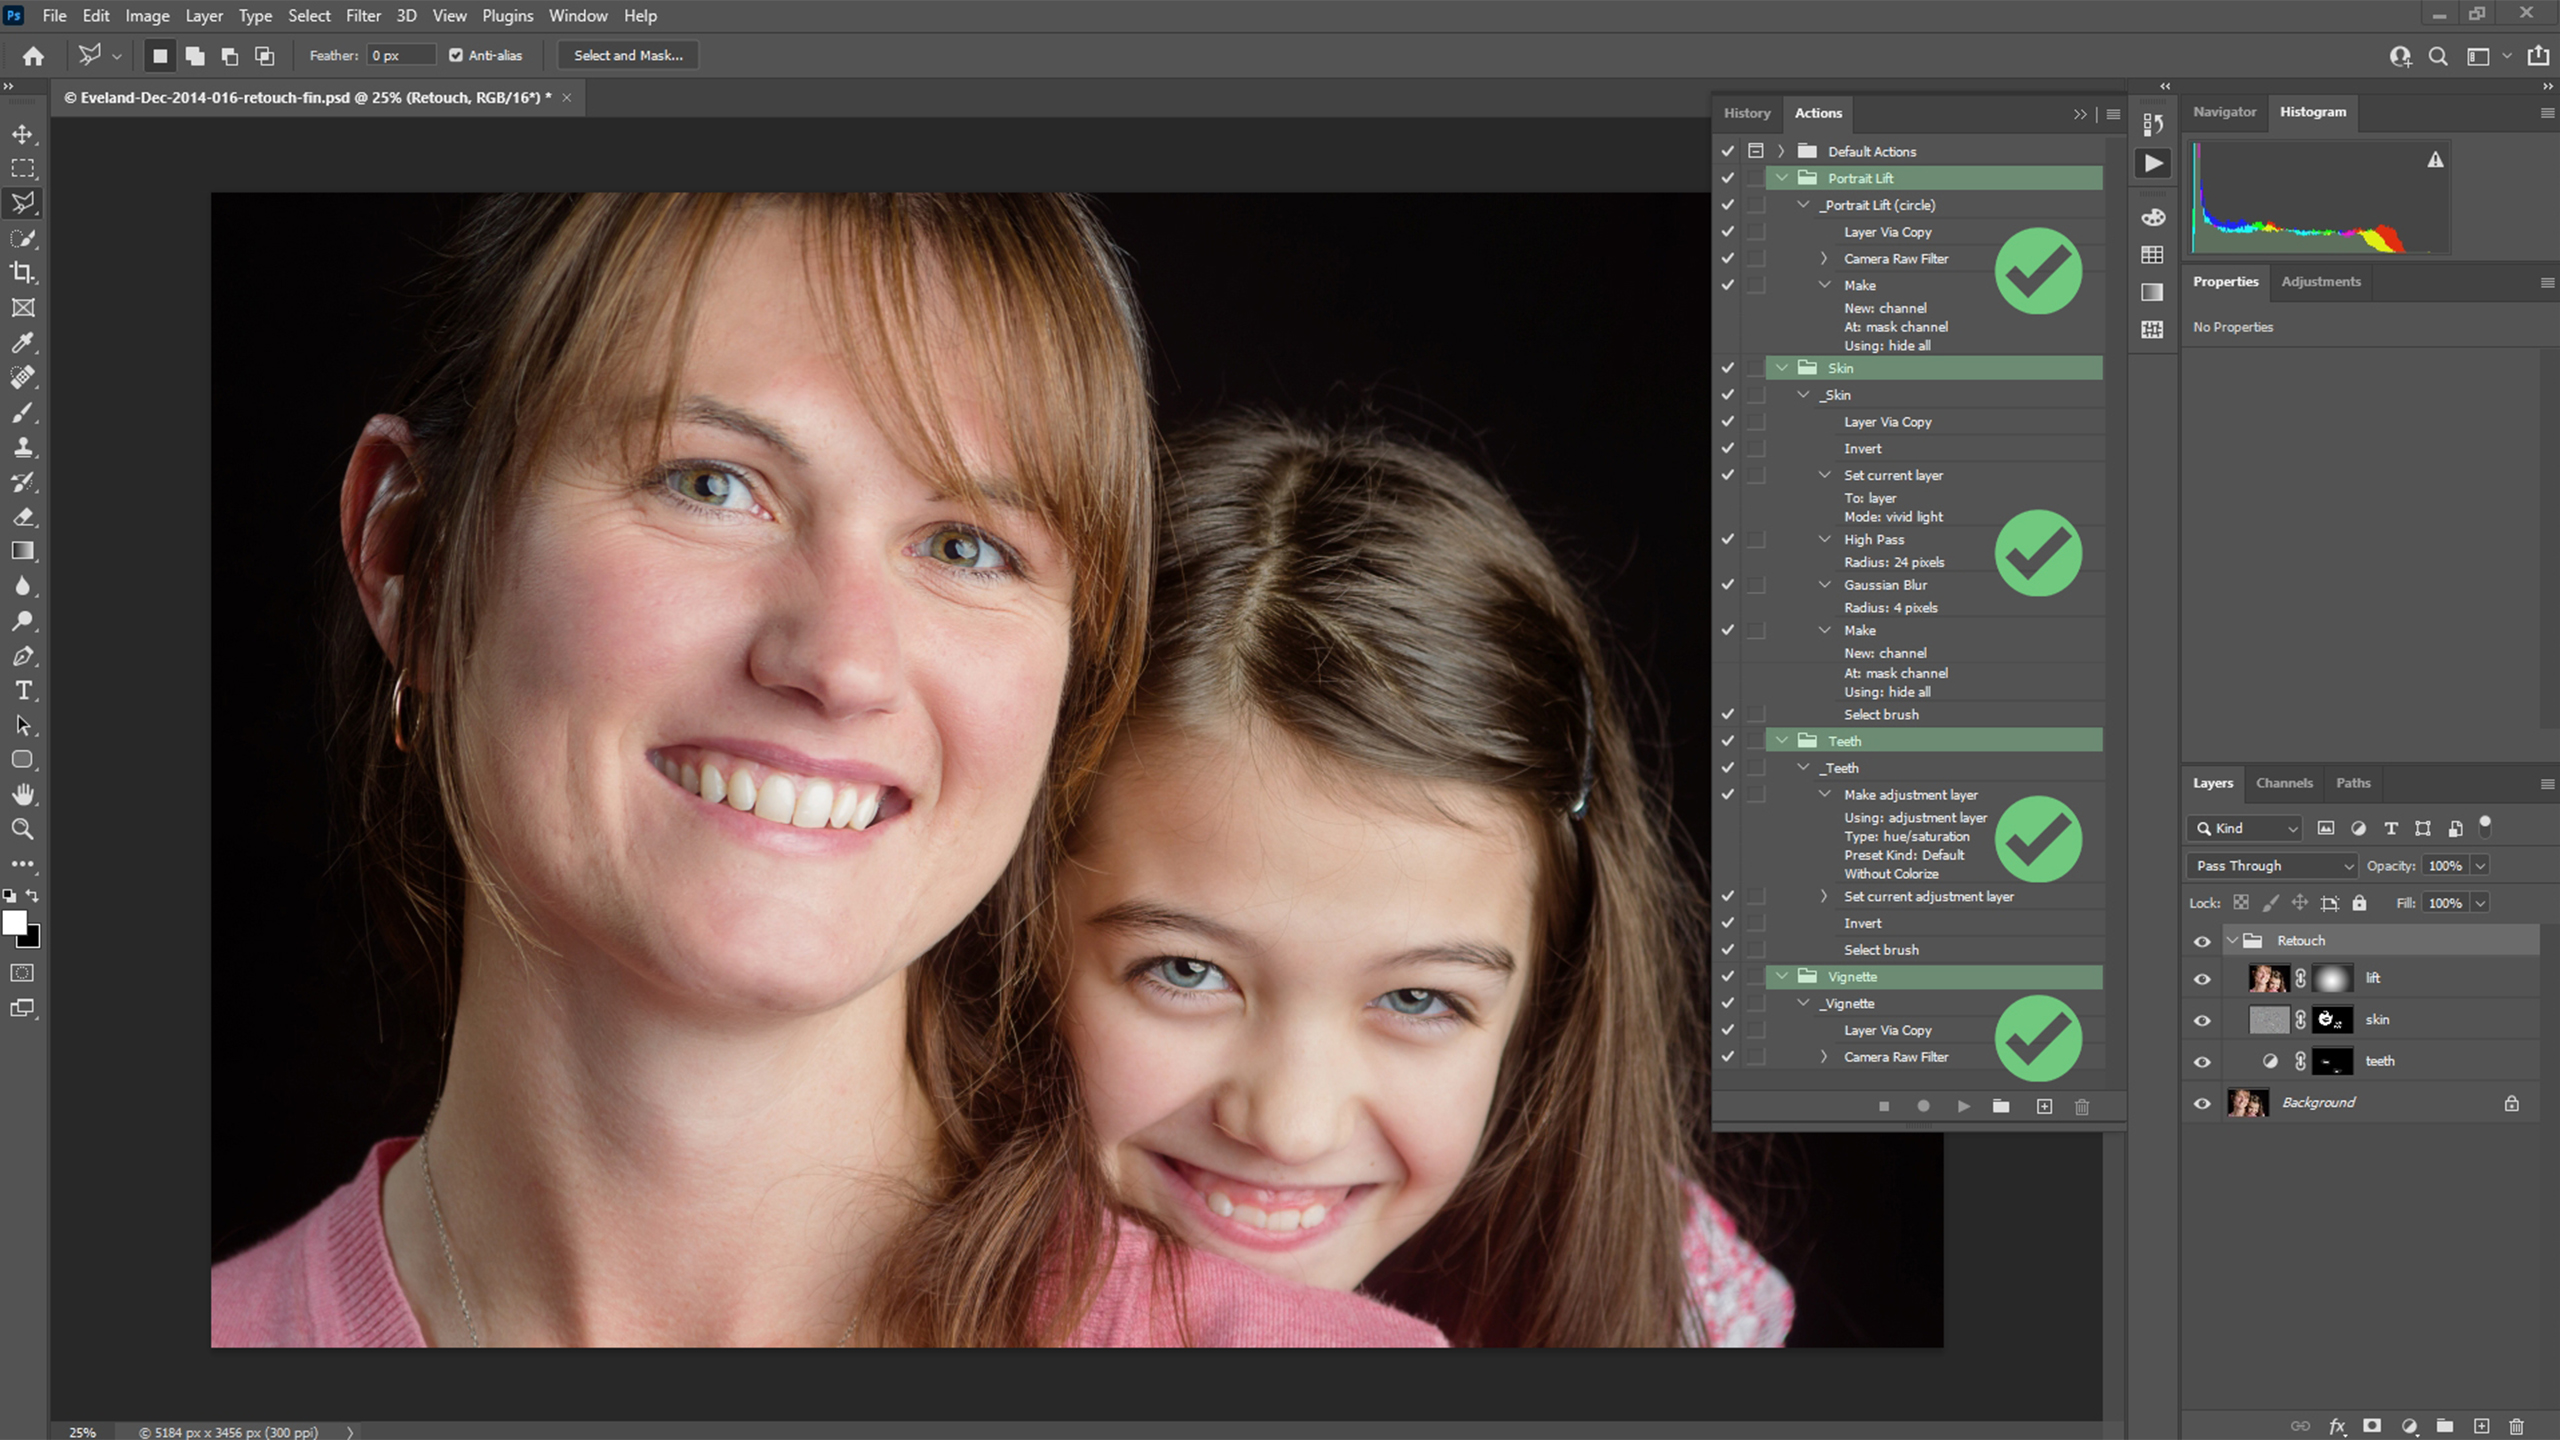 Four Photoshop Actions to fast-track your portrait workflow